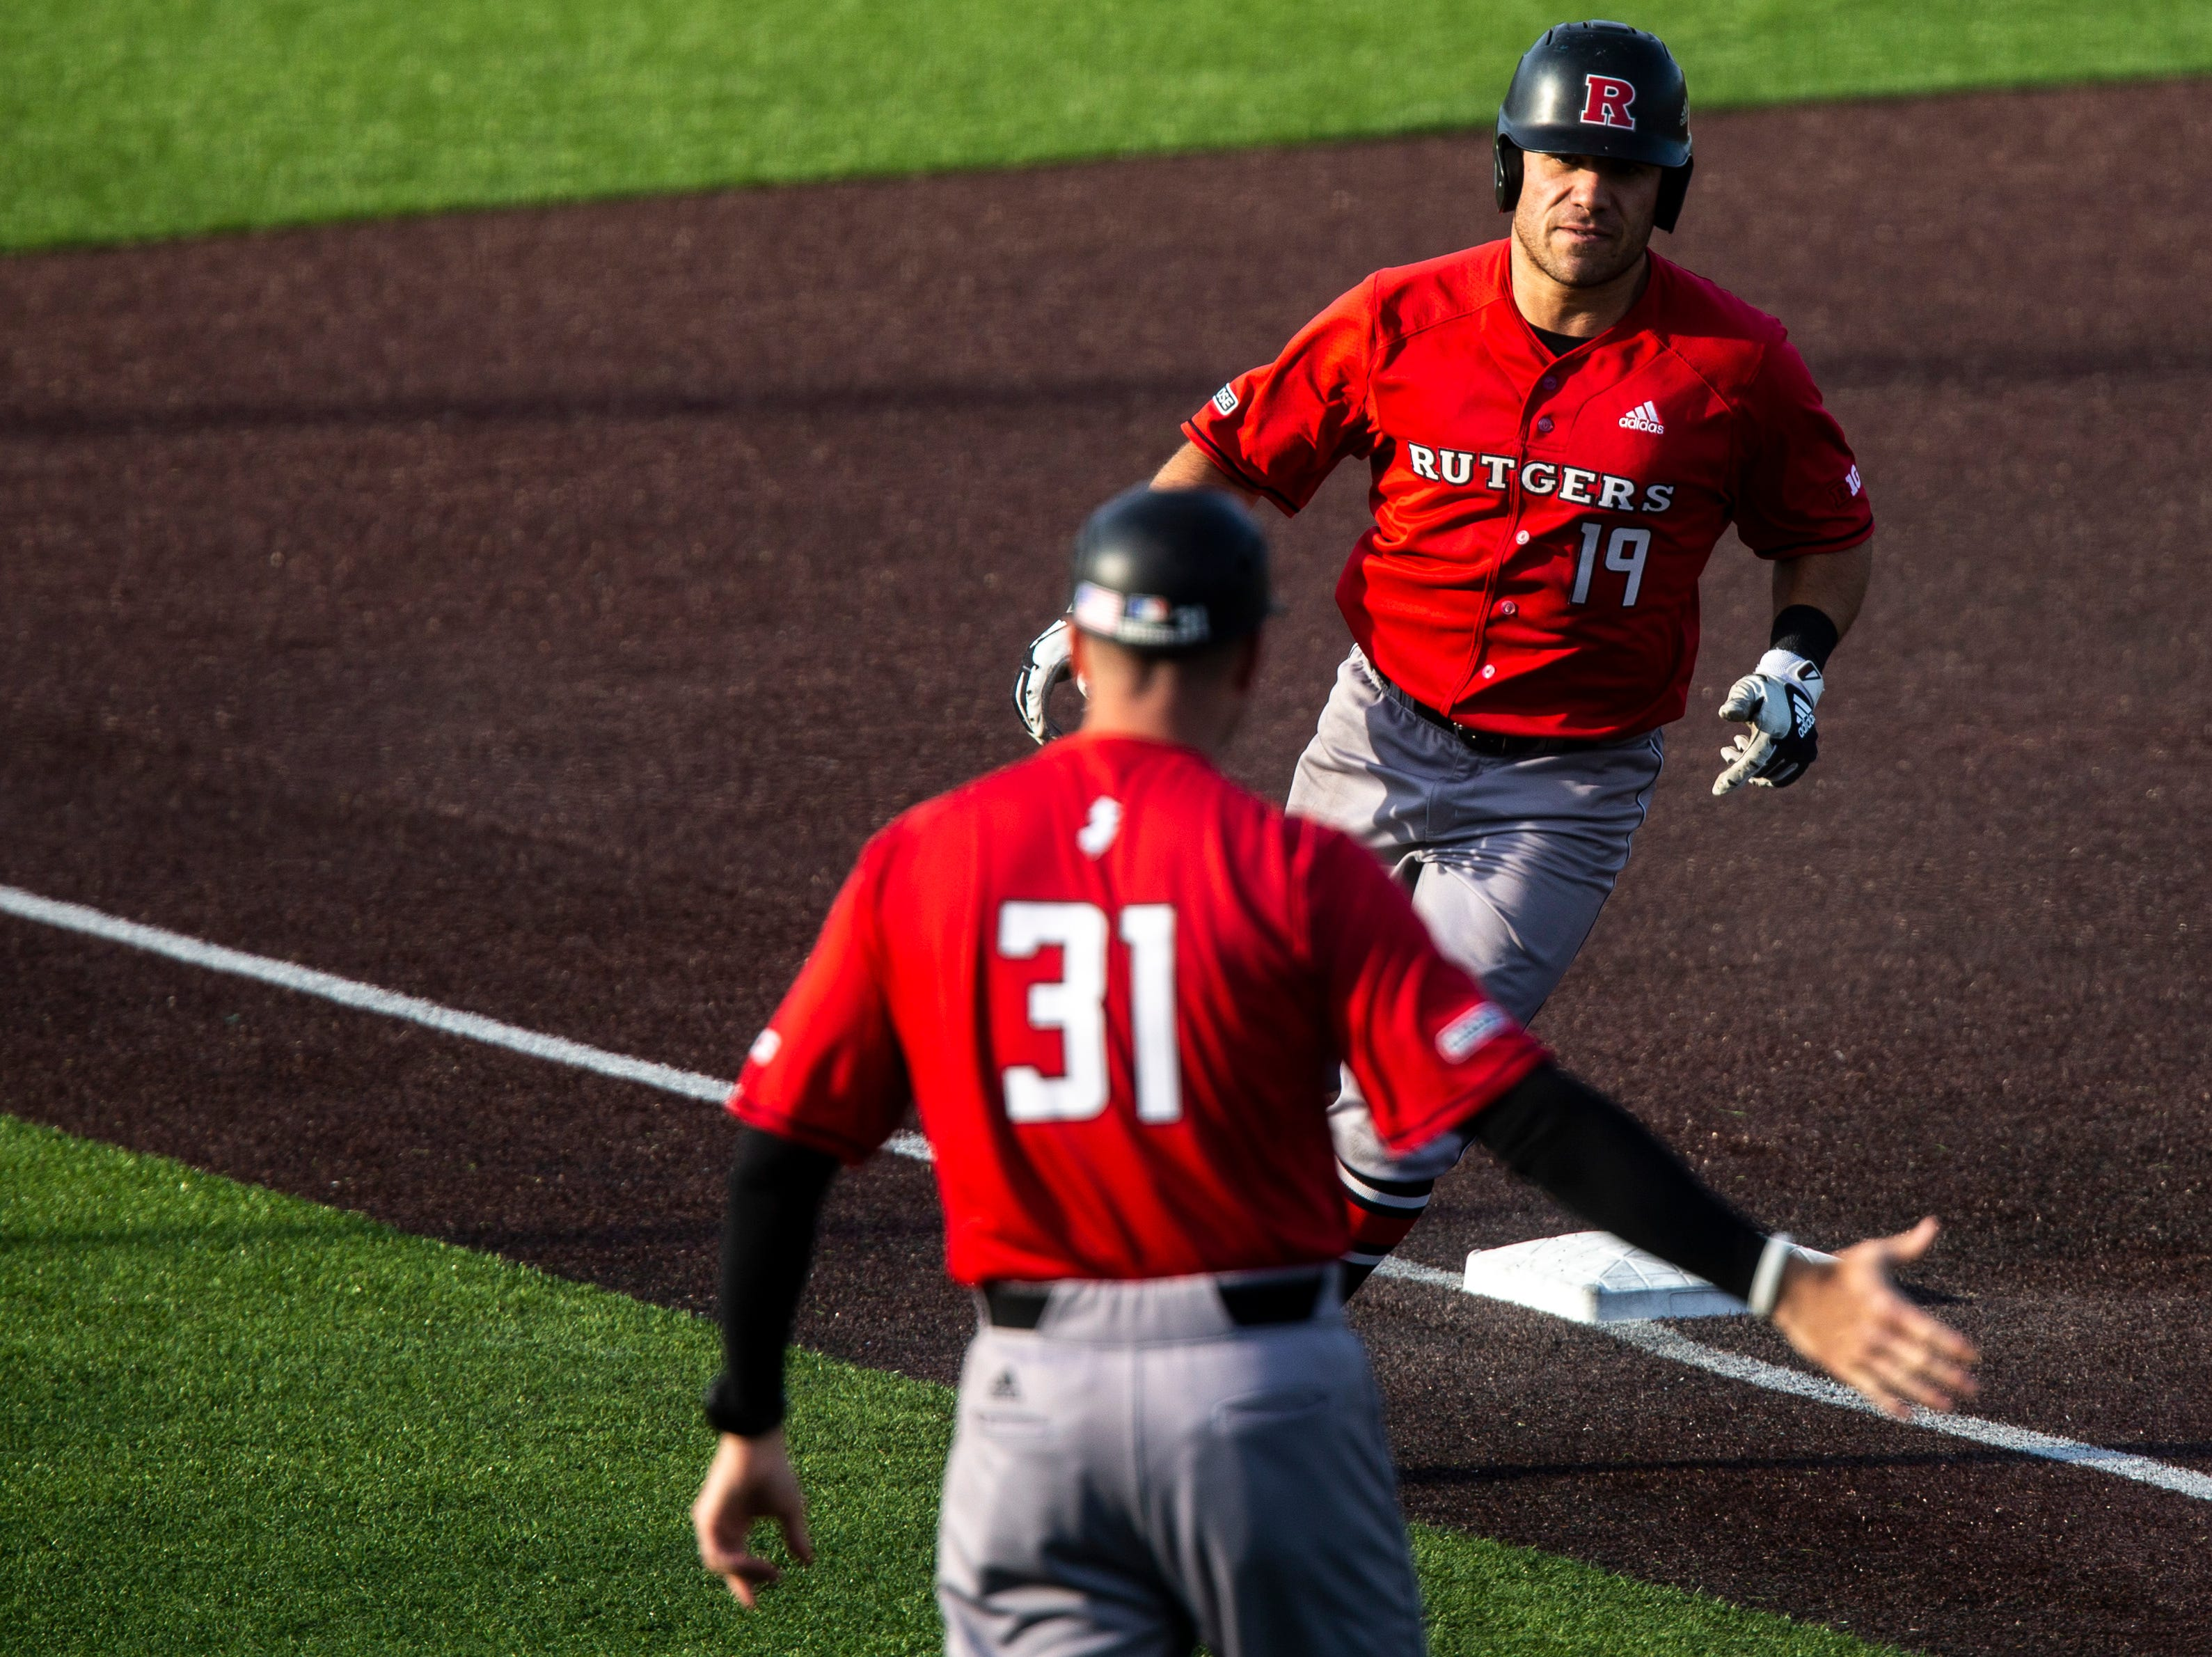 Rutgers' Carmen Sclafani rounds third on a home run during a NCAA Big Ten Conference baseball game on Saturday, April 6, 2019, at Duane Banks Field in Iowa City, Iowa.